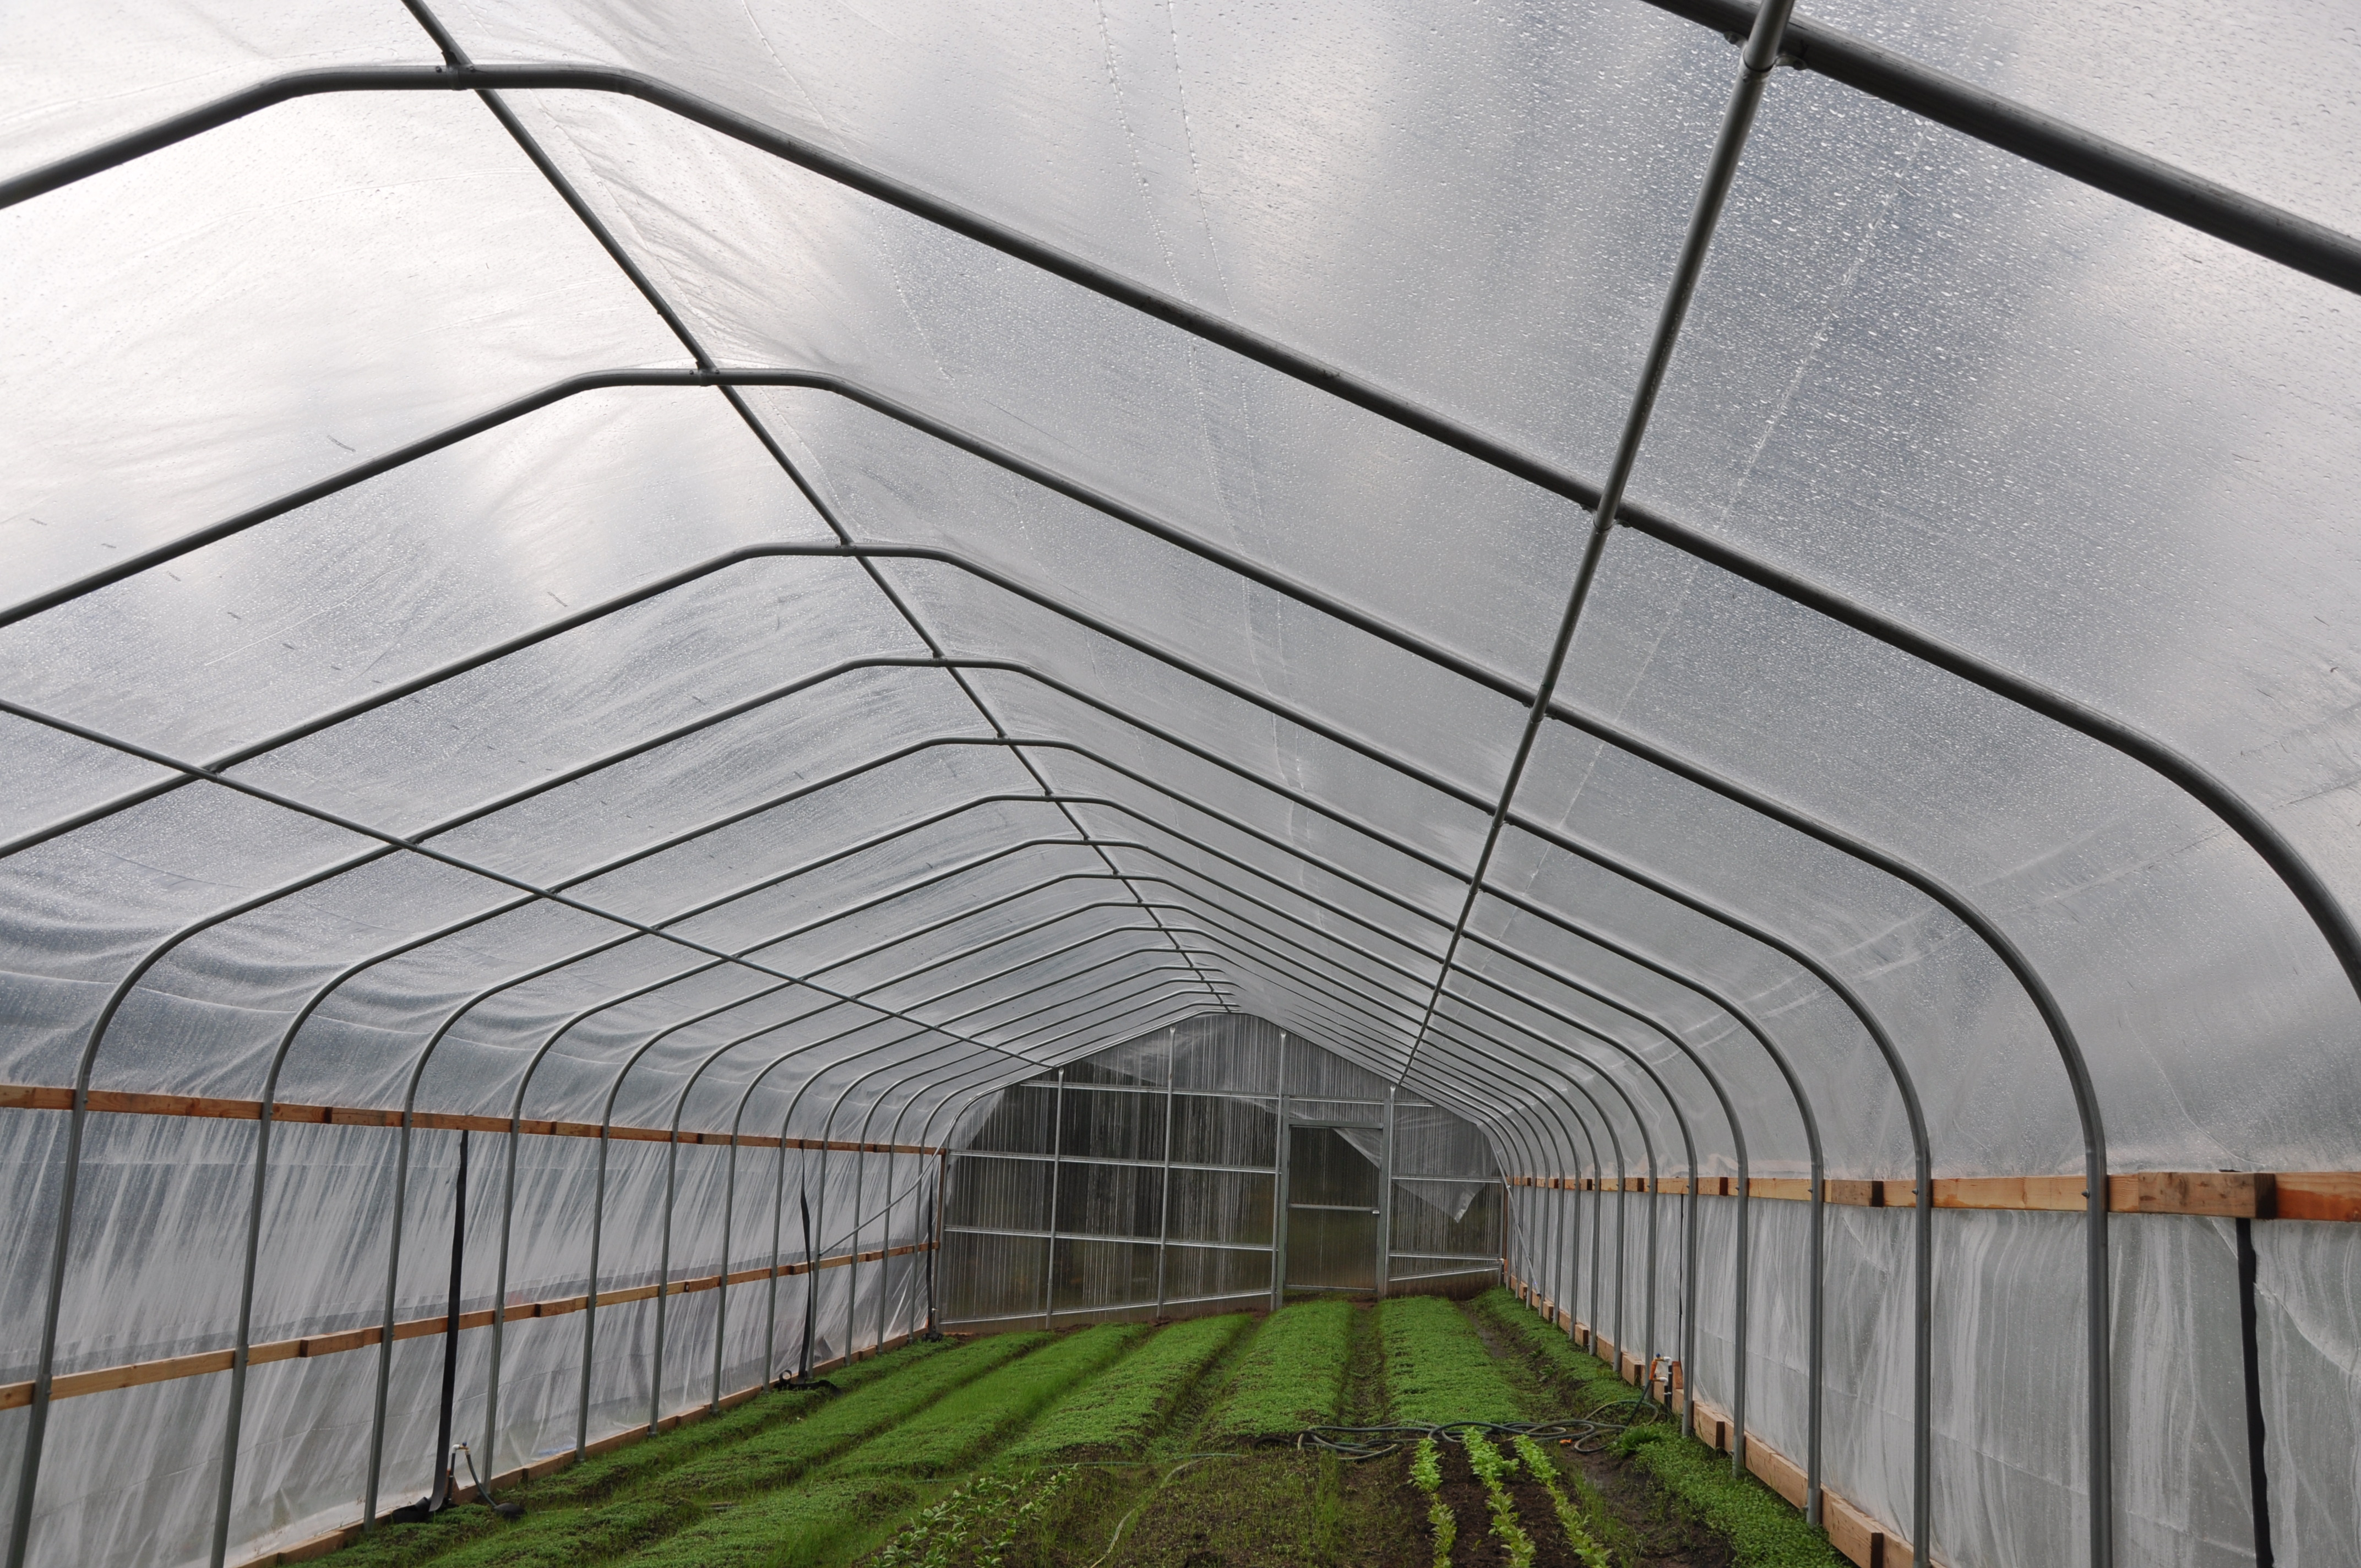 : A seasonal high tunnel installed with financial assistance from NRCS. Photo: Tracy Robillard.